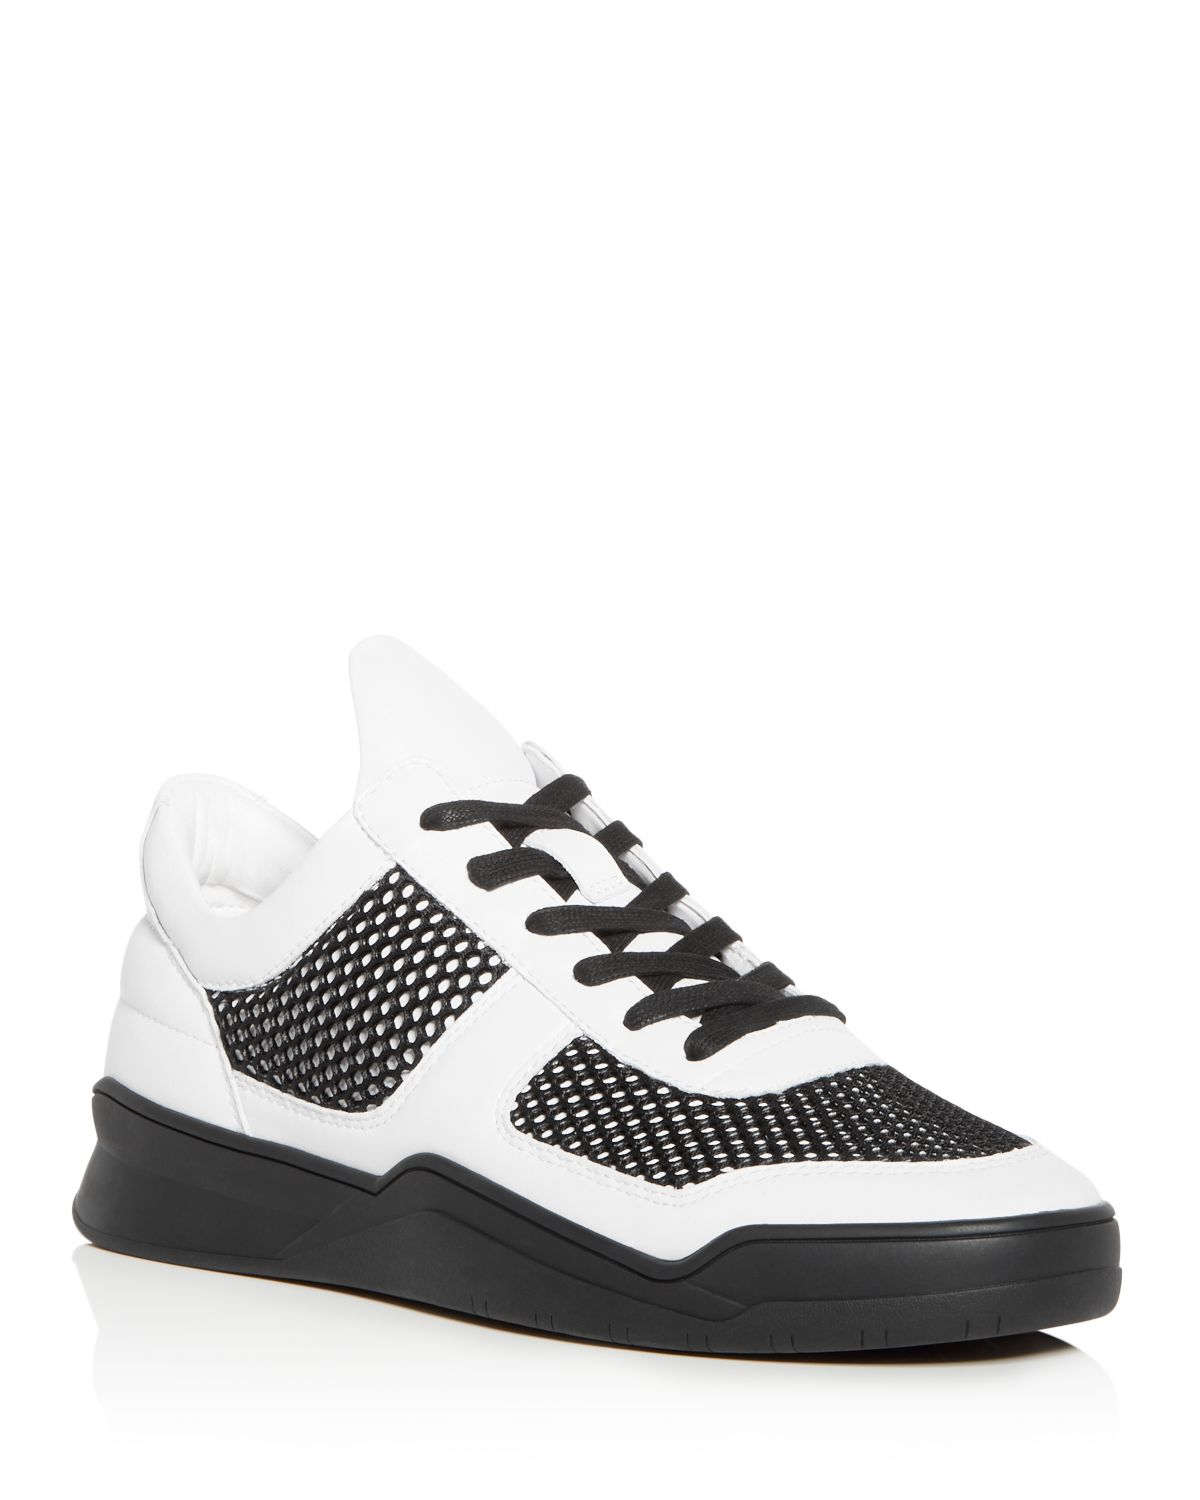 Karl Lagerfeld Men's Leather Lace Up Sneakers